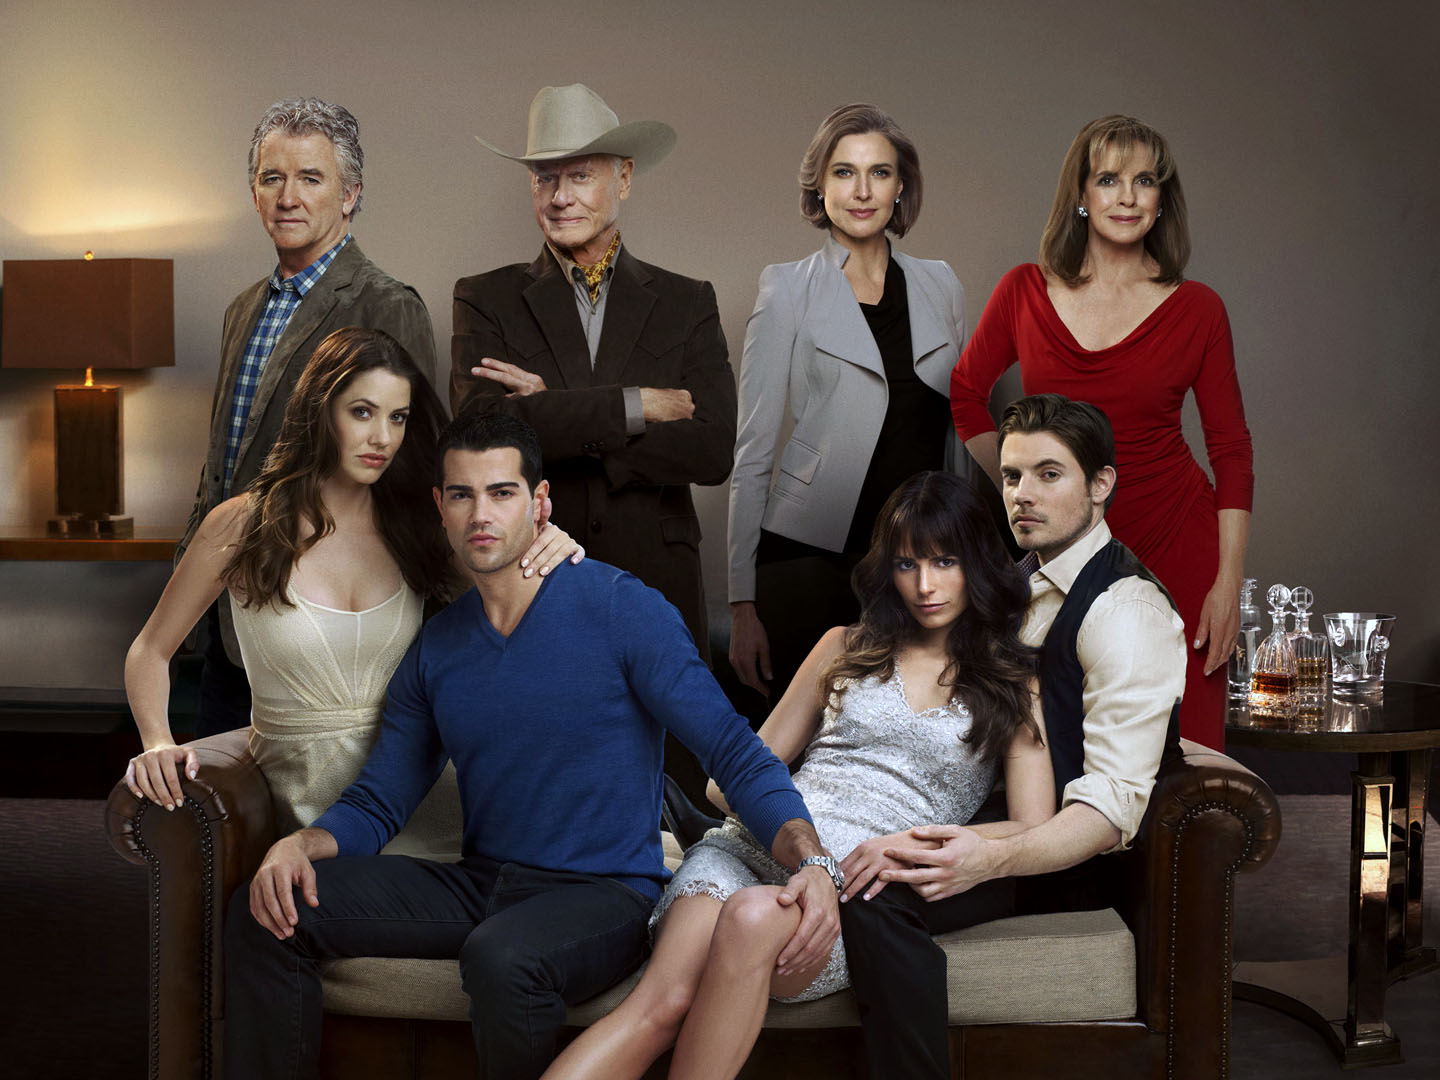 dallas 2012 dallas tv show wallpaper 31459923 fanpop